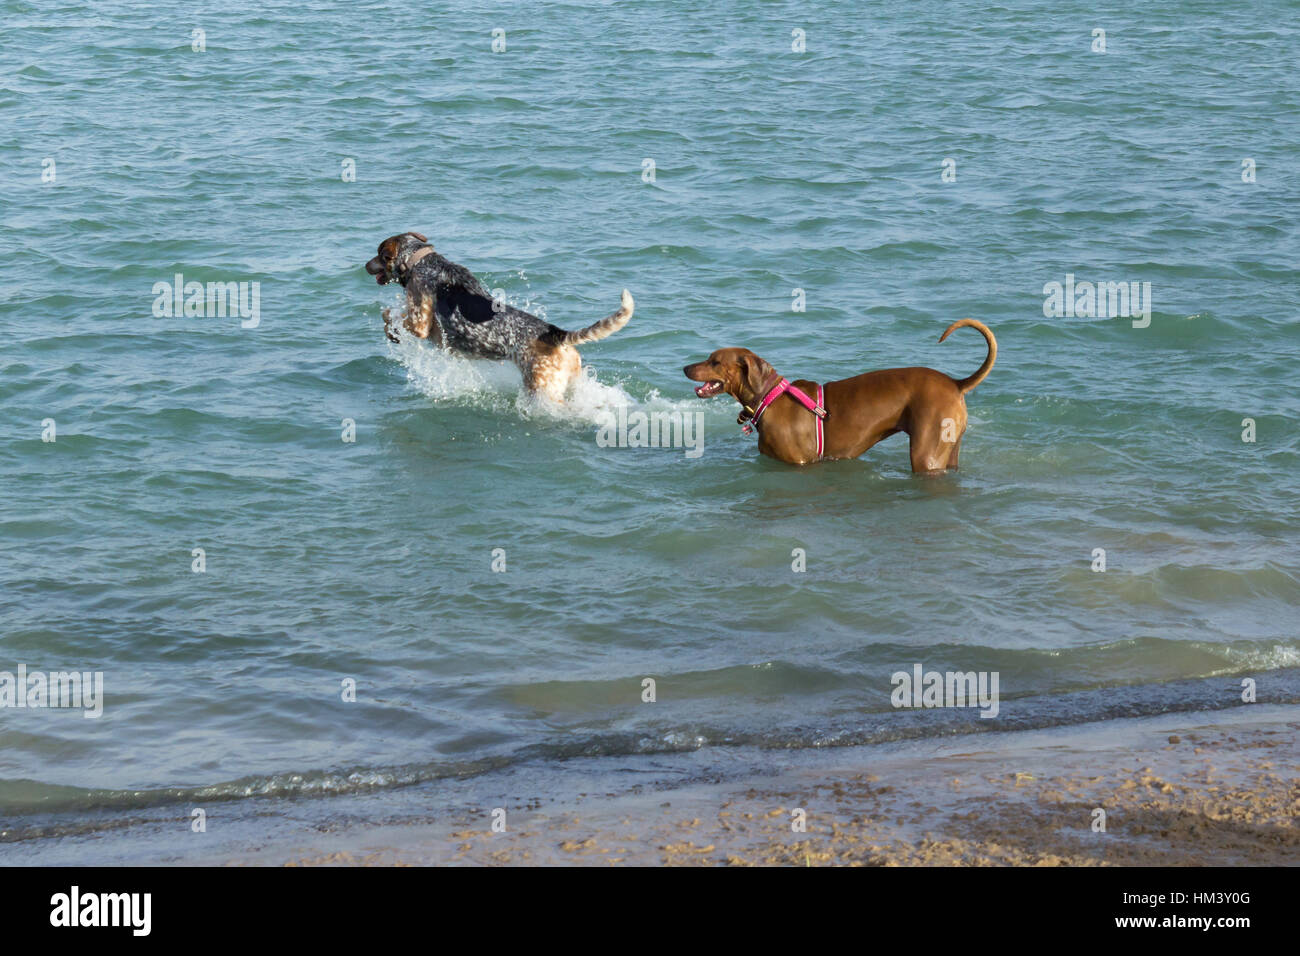 Hound dog leaping and splashing in the water with her mutt pal, a Rhodesian Ridgeback mix, standing behind her. - Stock Image